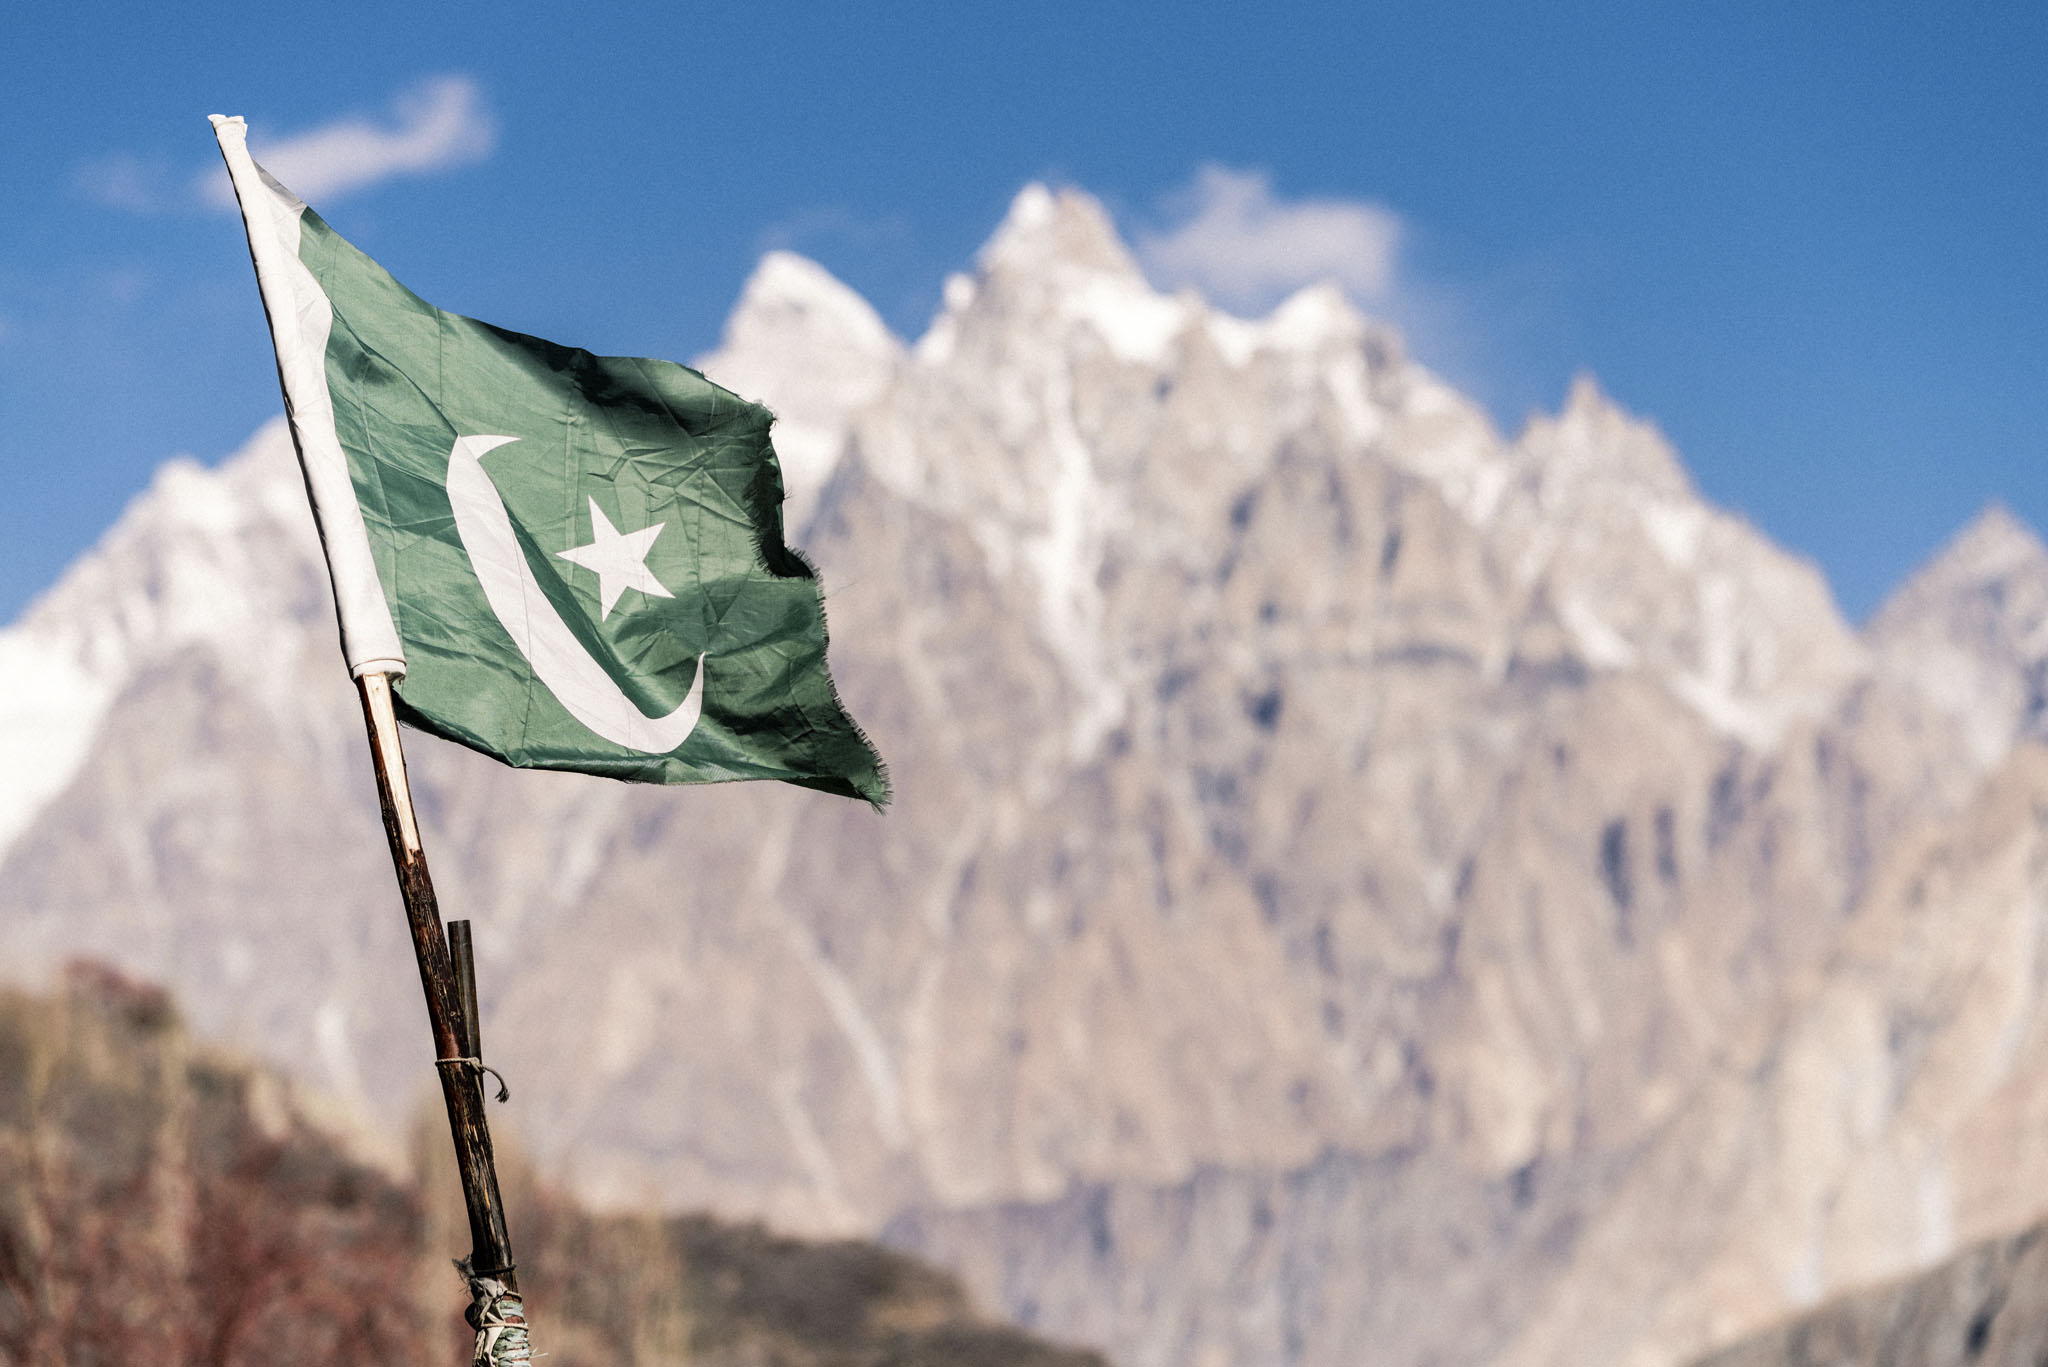 Pakistan – Skiing for Freedom